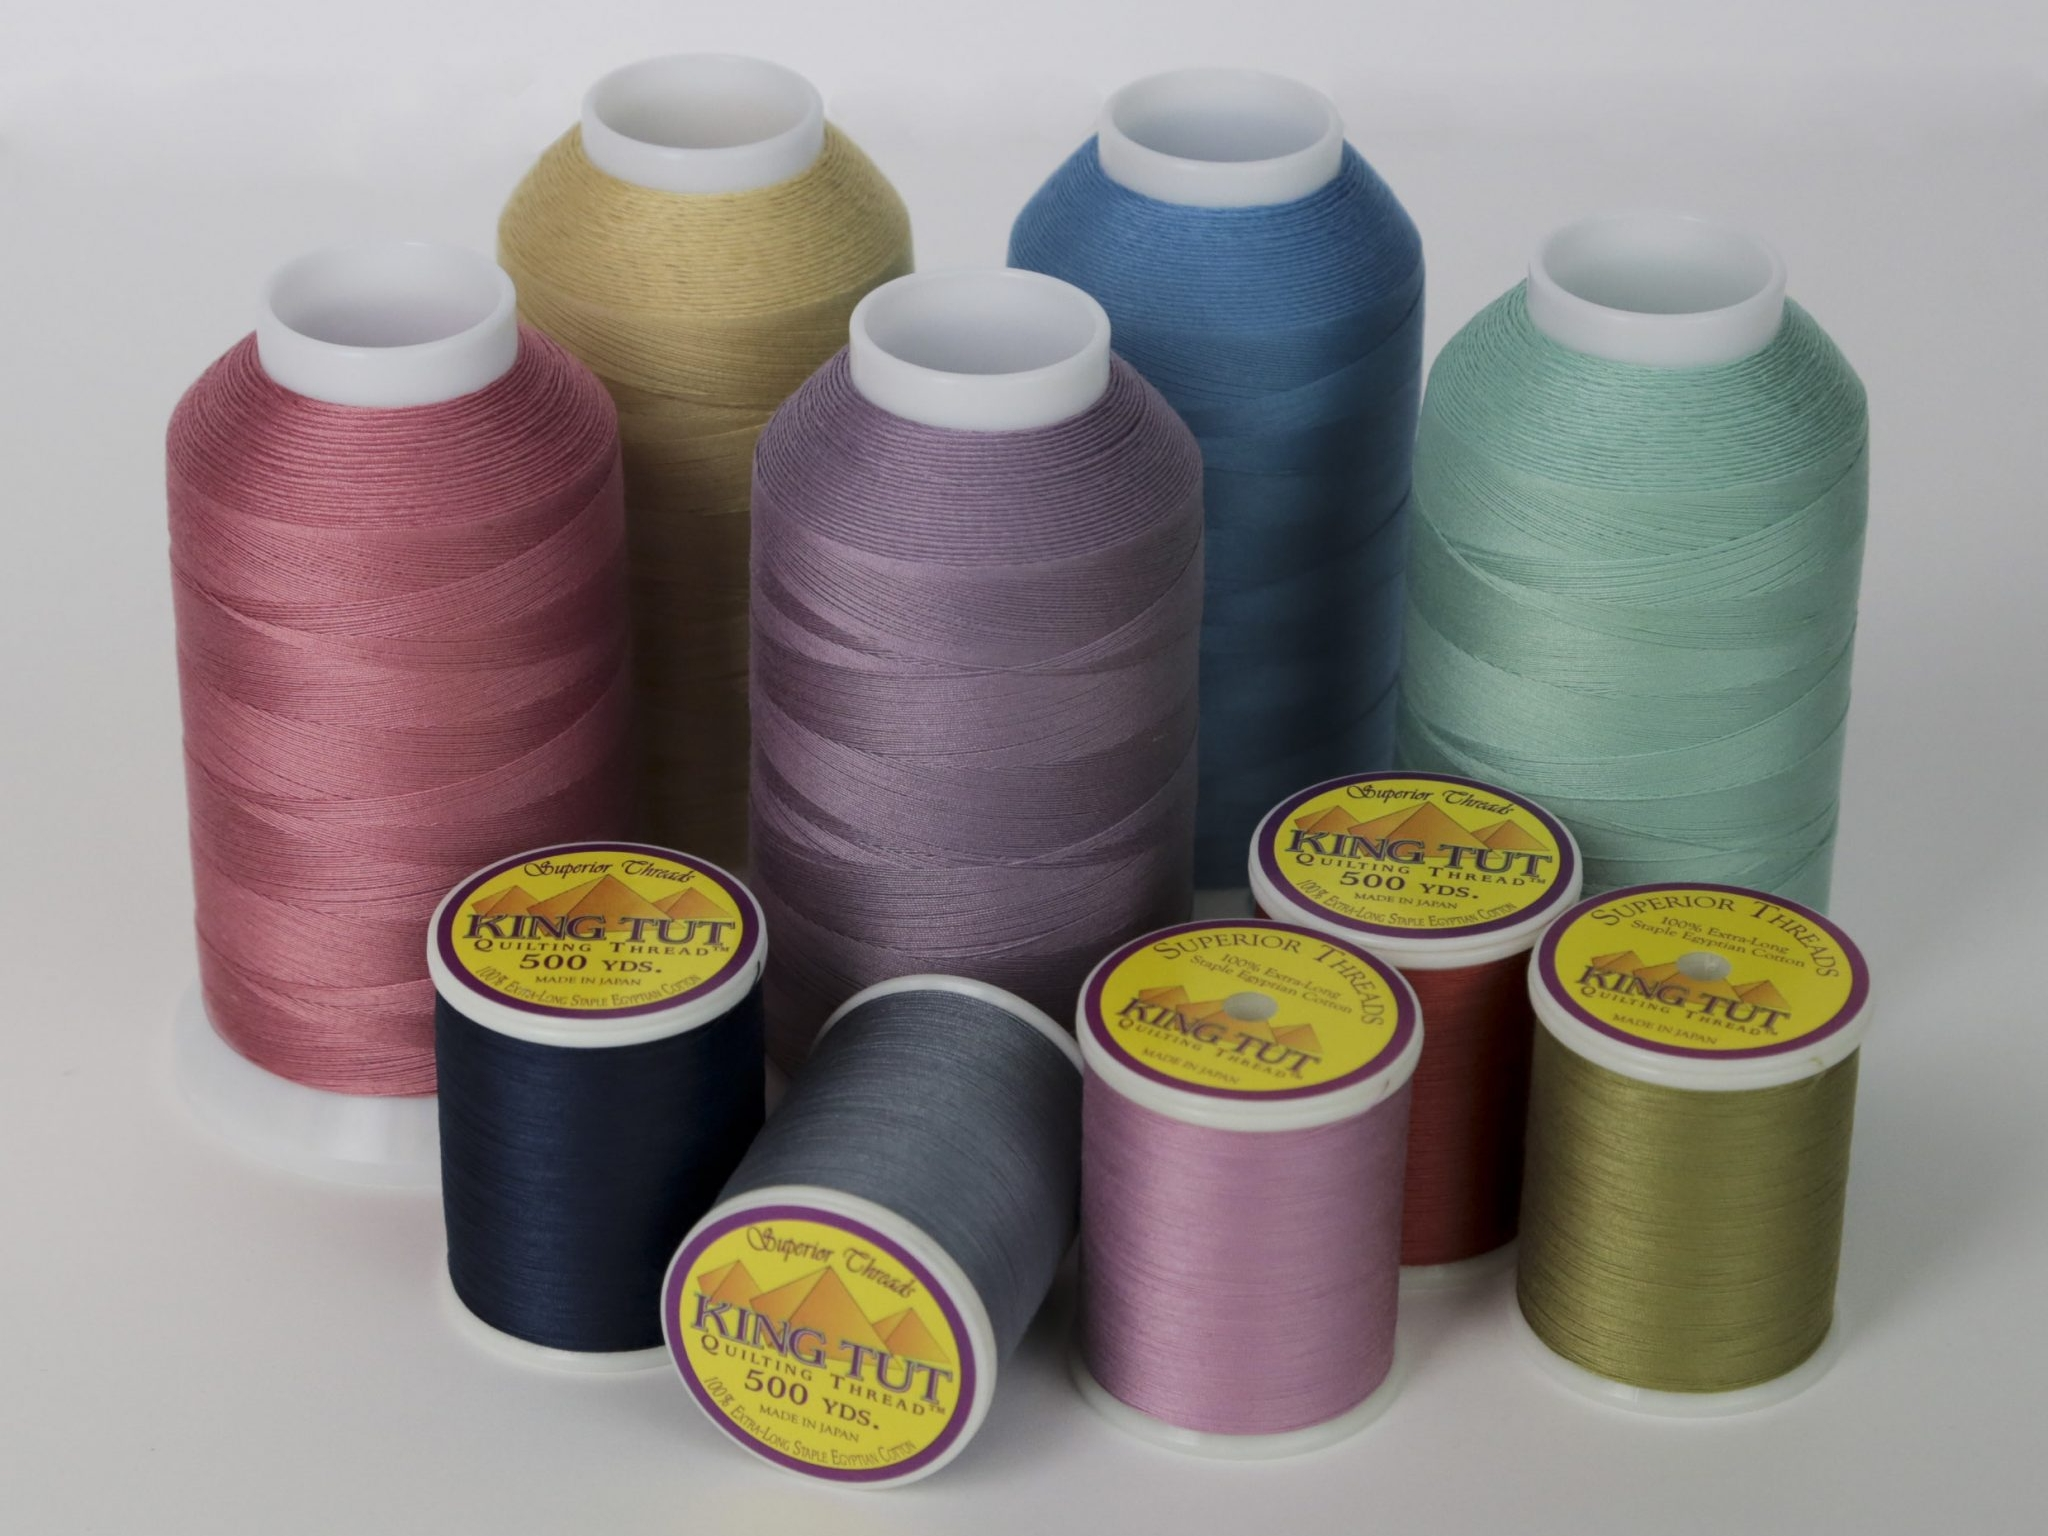 Threads &Notions - All the threads and quilting notions you need to perfect your project!